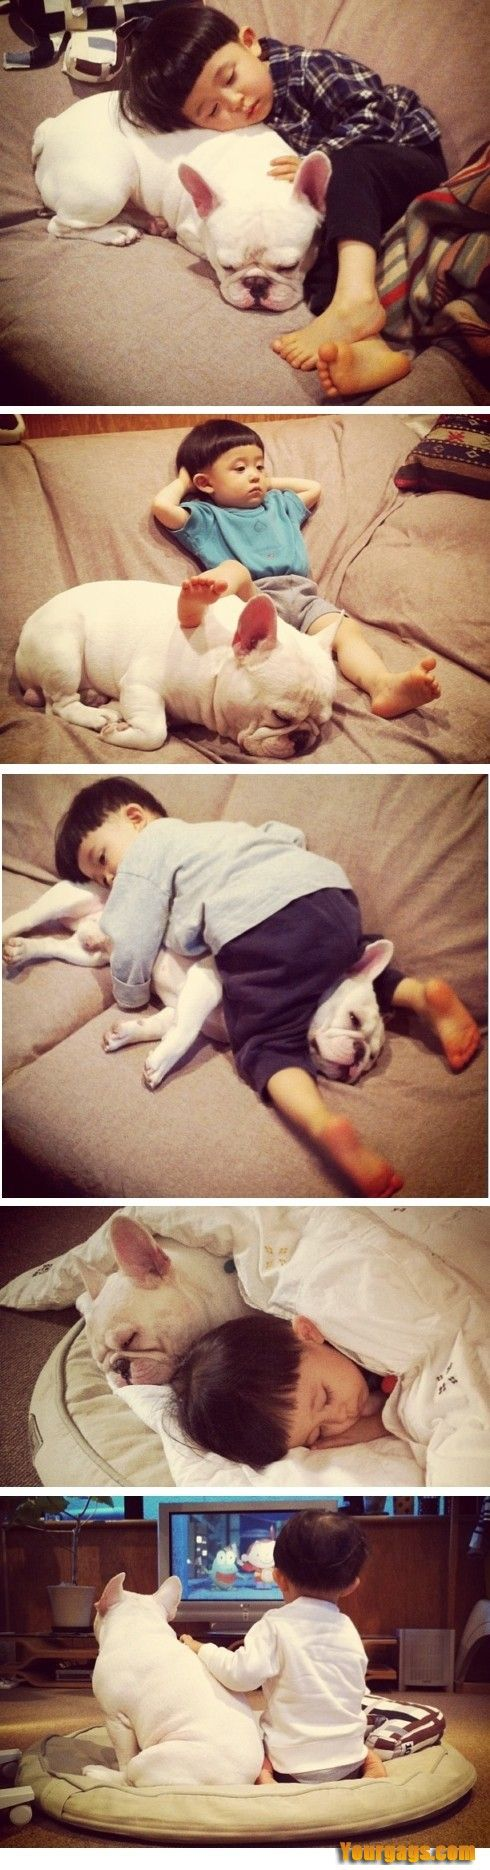 Sweet Friendship Between a Boy and His French Bulldog | Obsessed